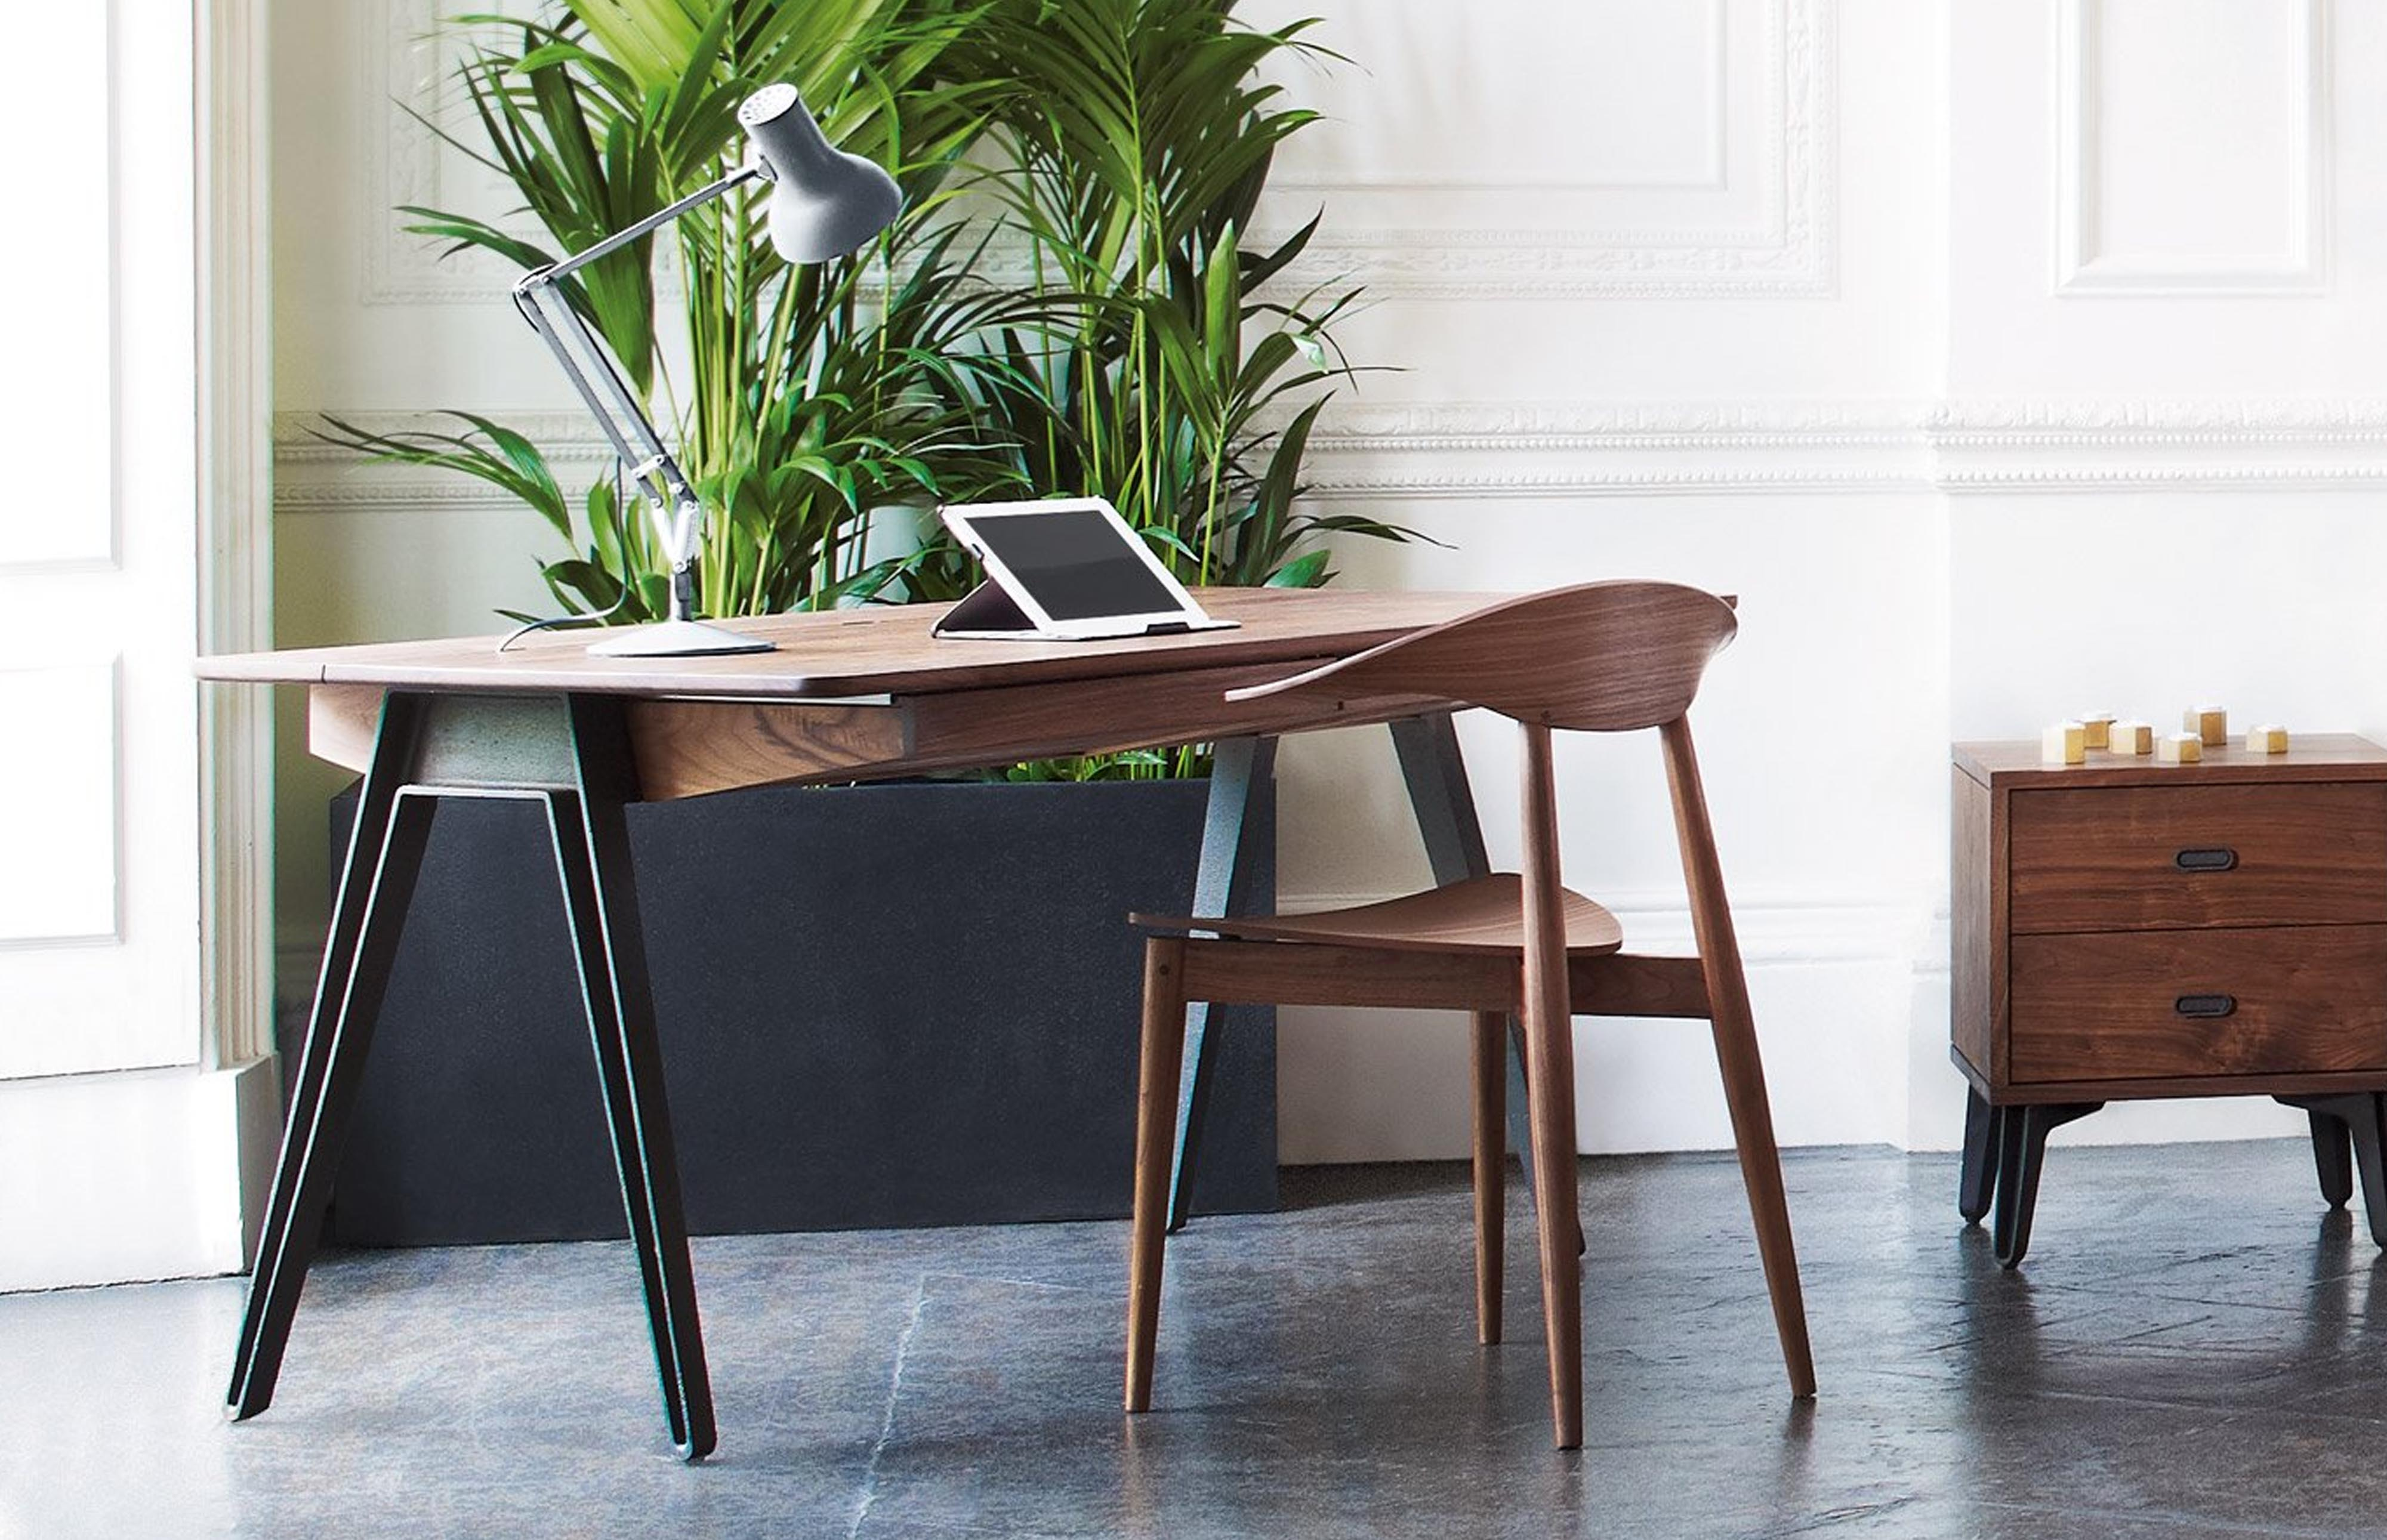 The Orson Desk by Matthew Hilton, for De La Espad